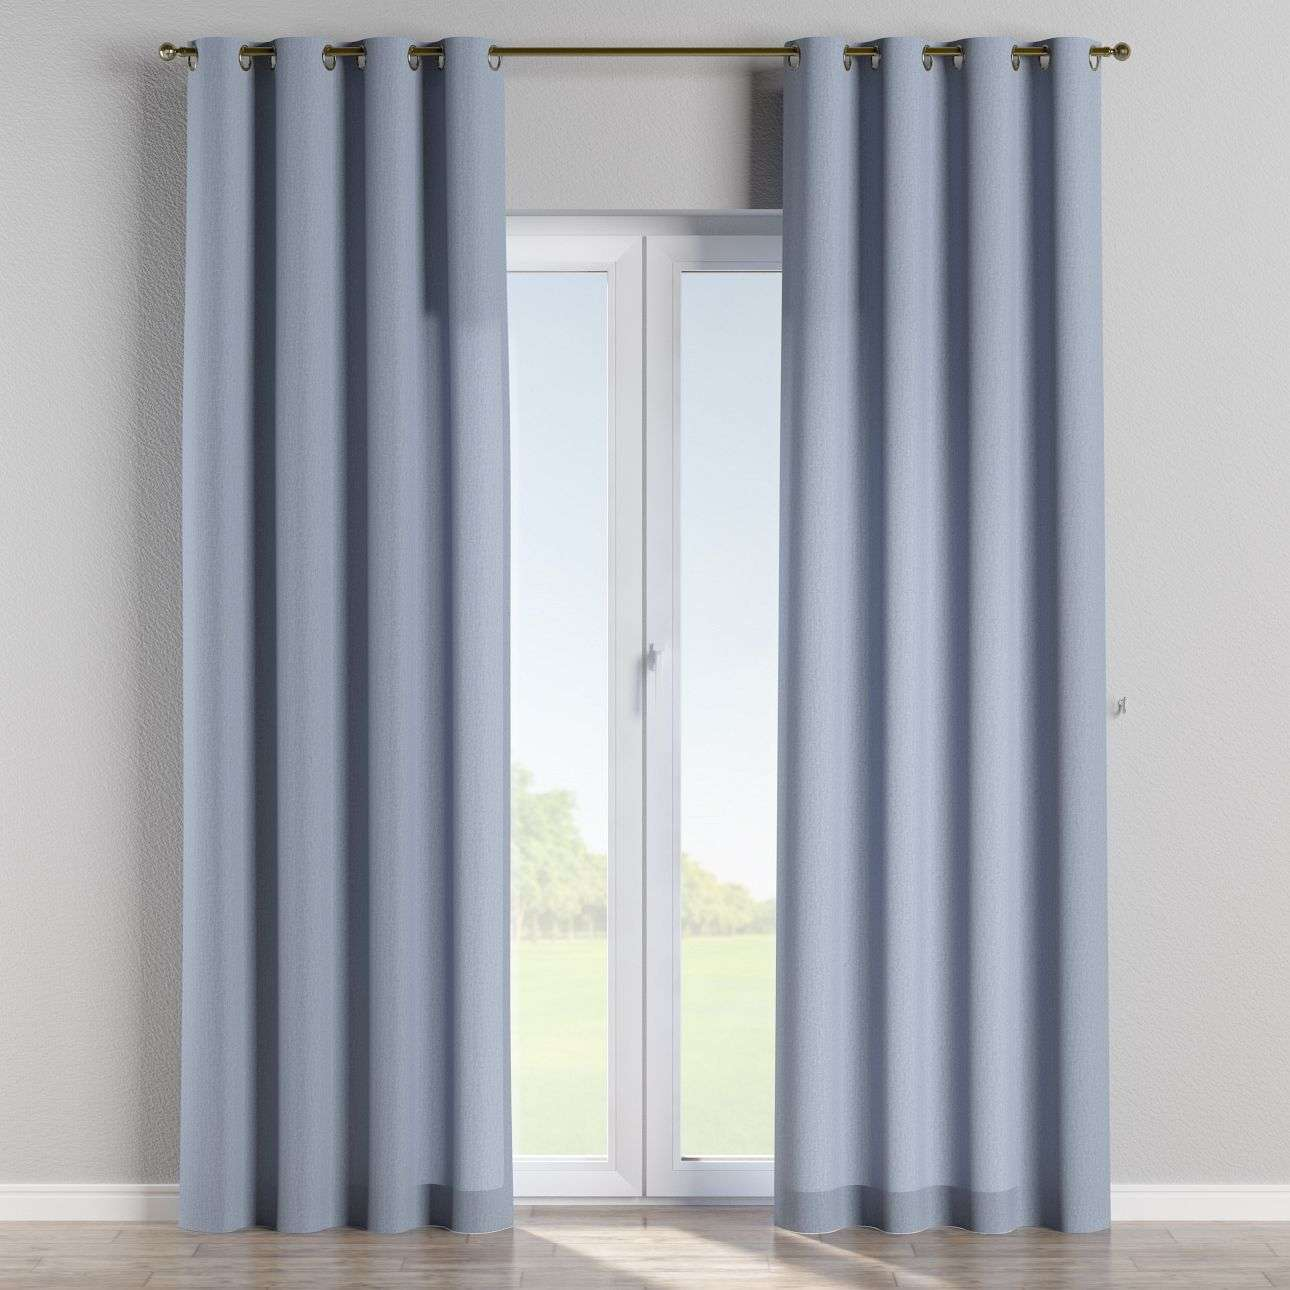 Eyelet curtains in collection Chenille, fabric: 702-13